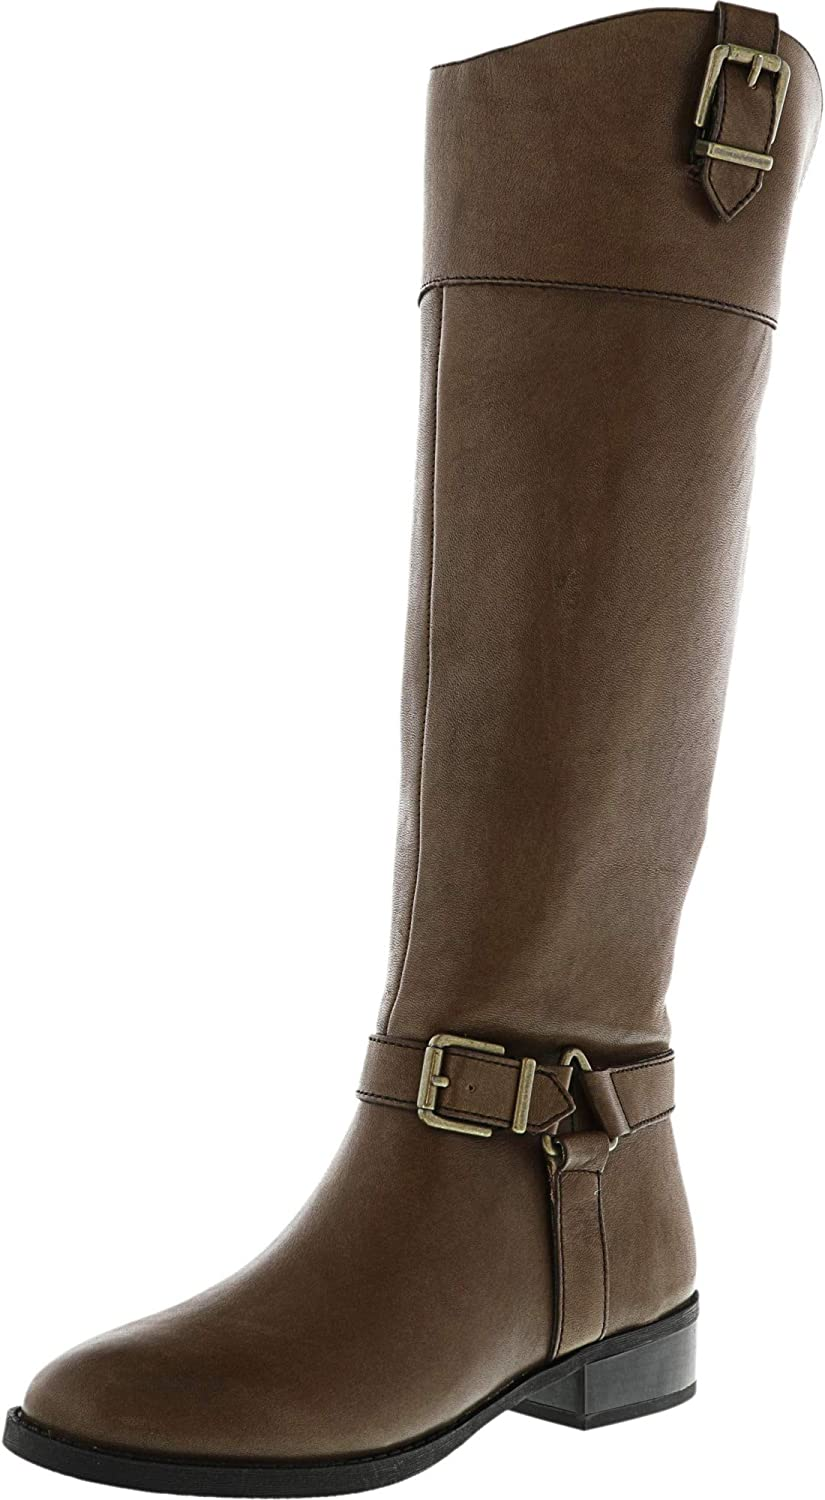 Inc Women's Fedee Cement Knee-High Leather Equestrian Boot - 5M